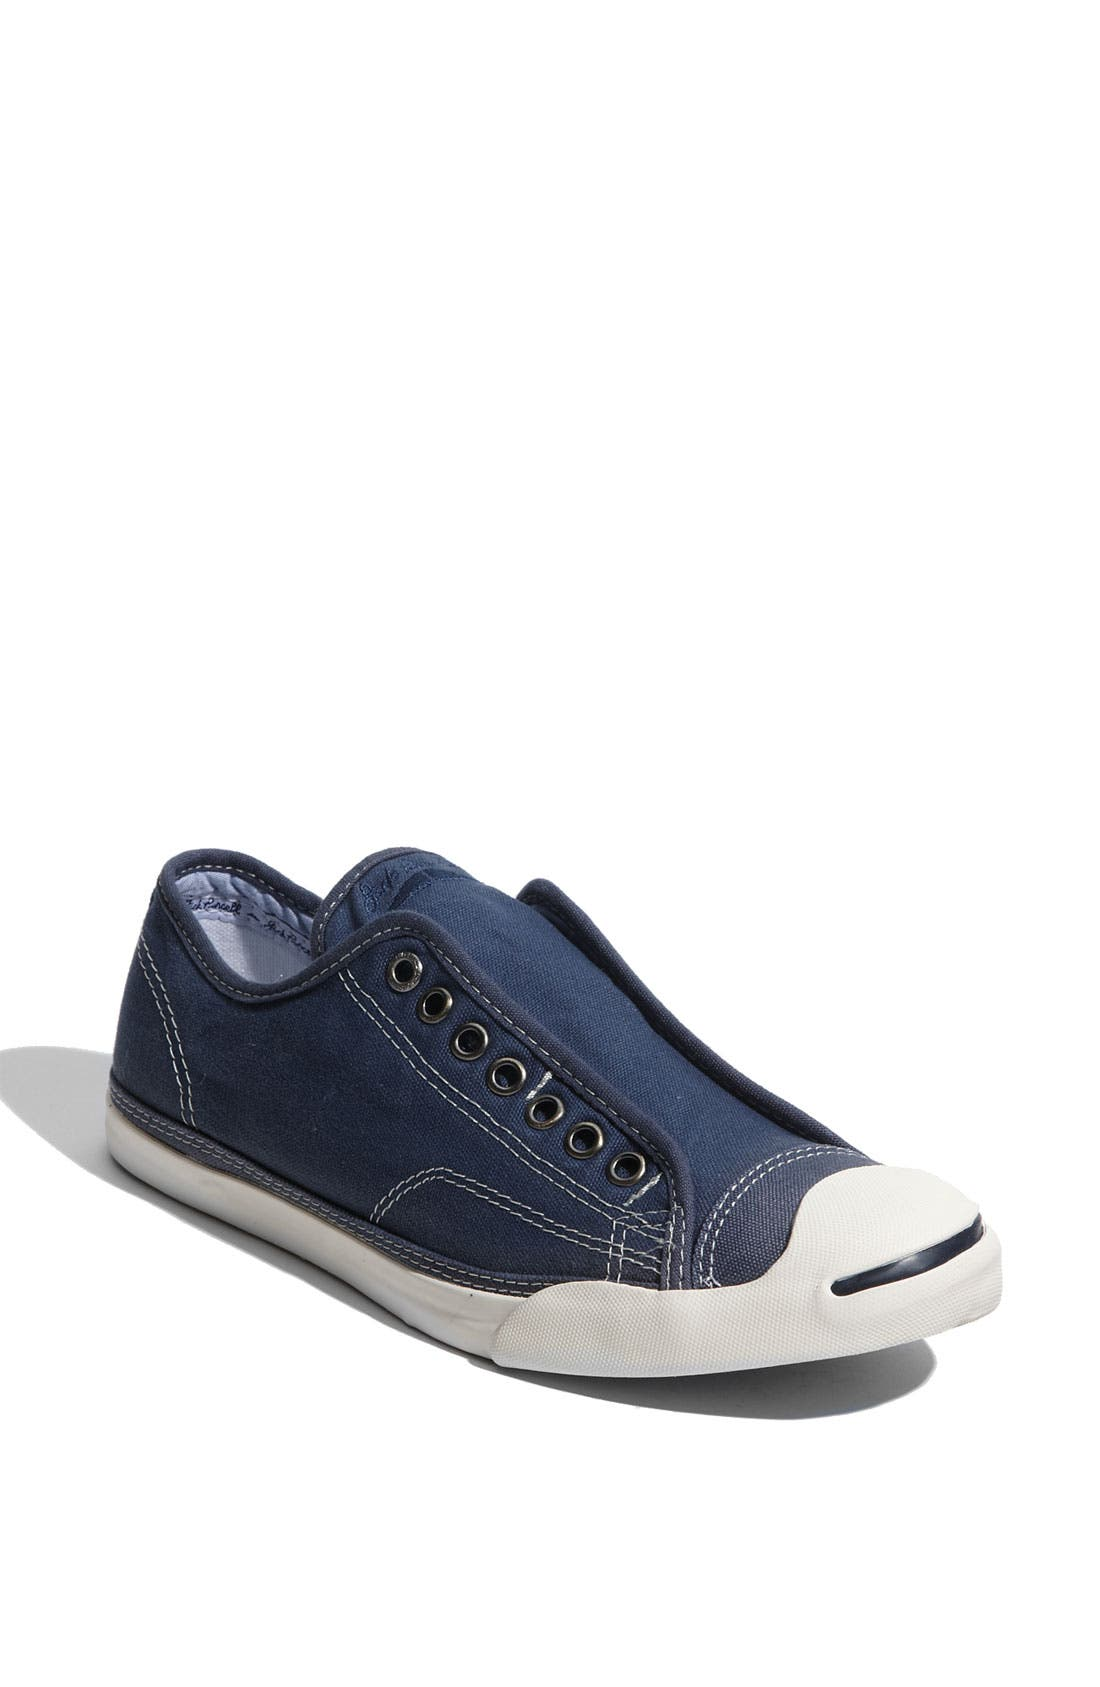 Alternate Image 1 Selected - Converse 'Jack Purcell' Slip-On Sneaker (Women)